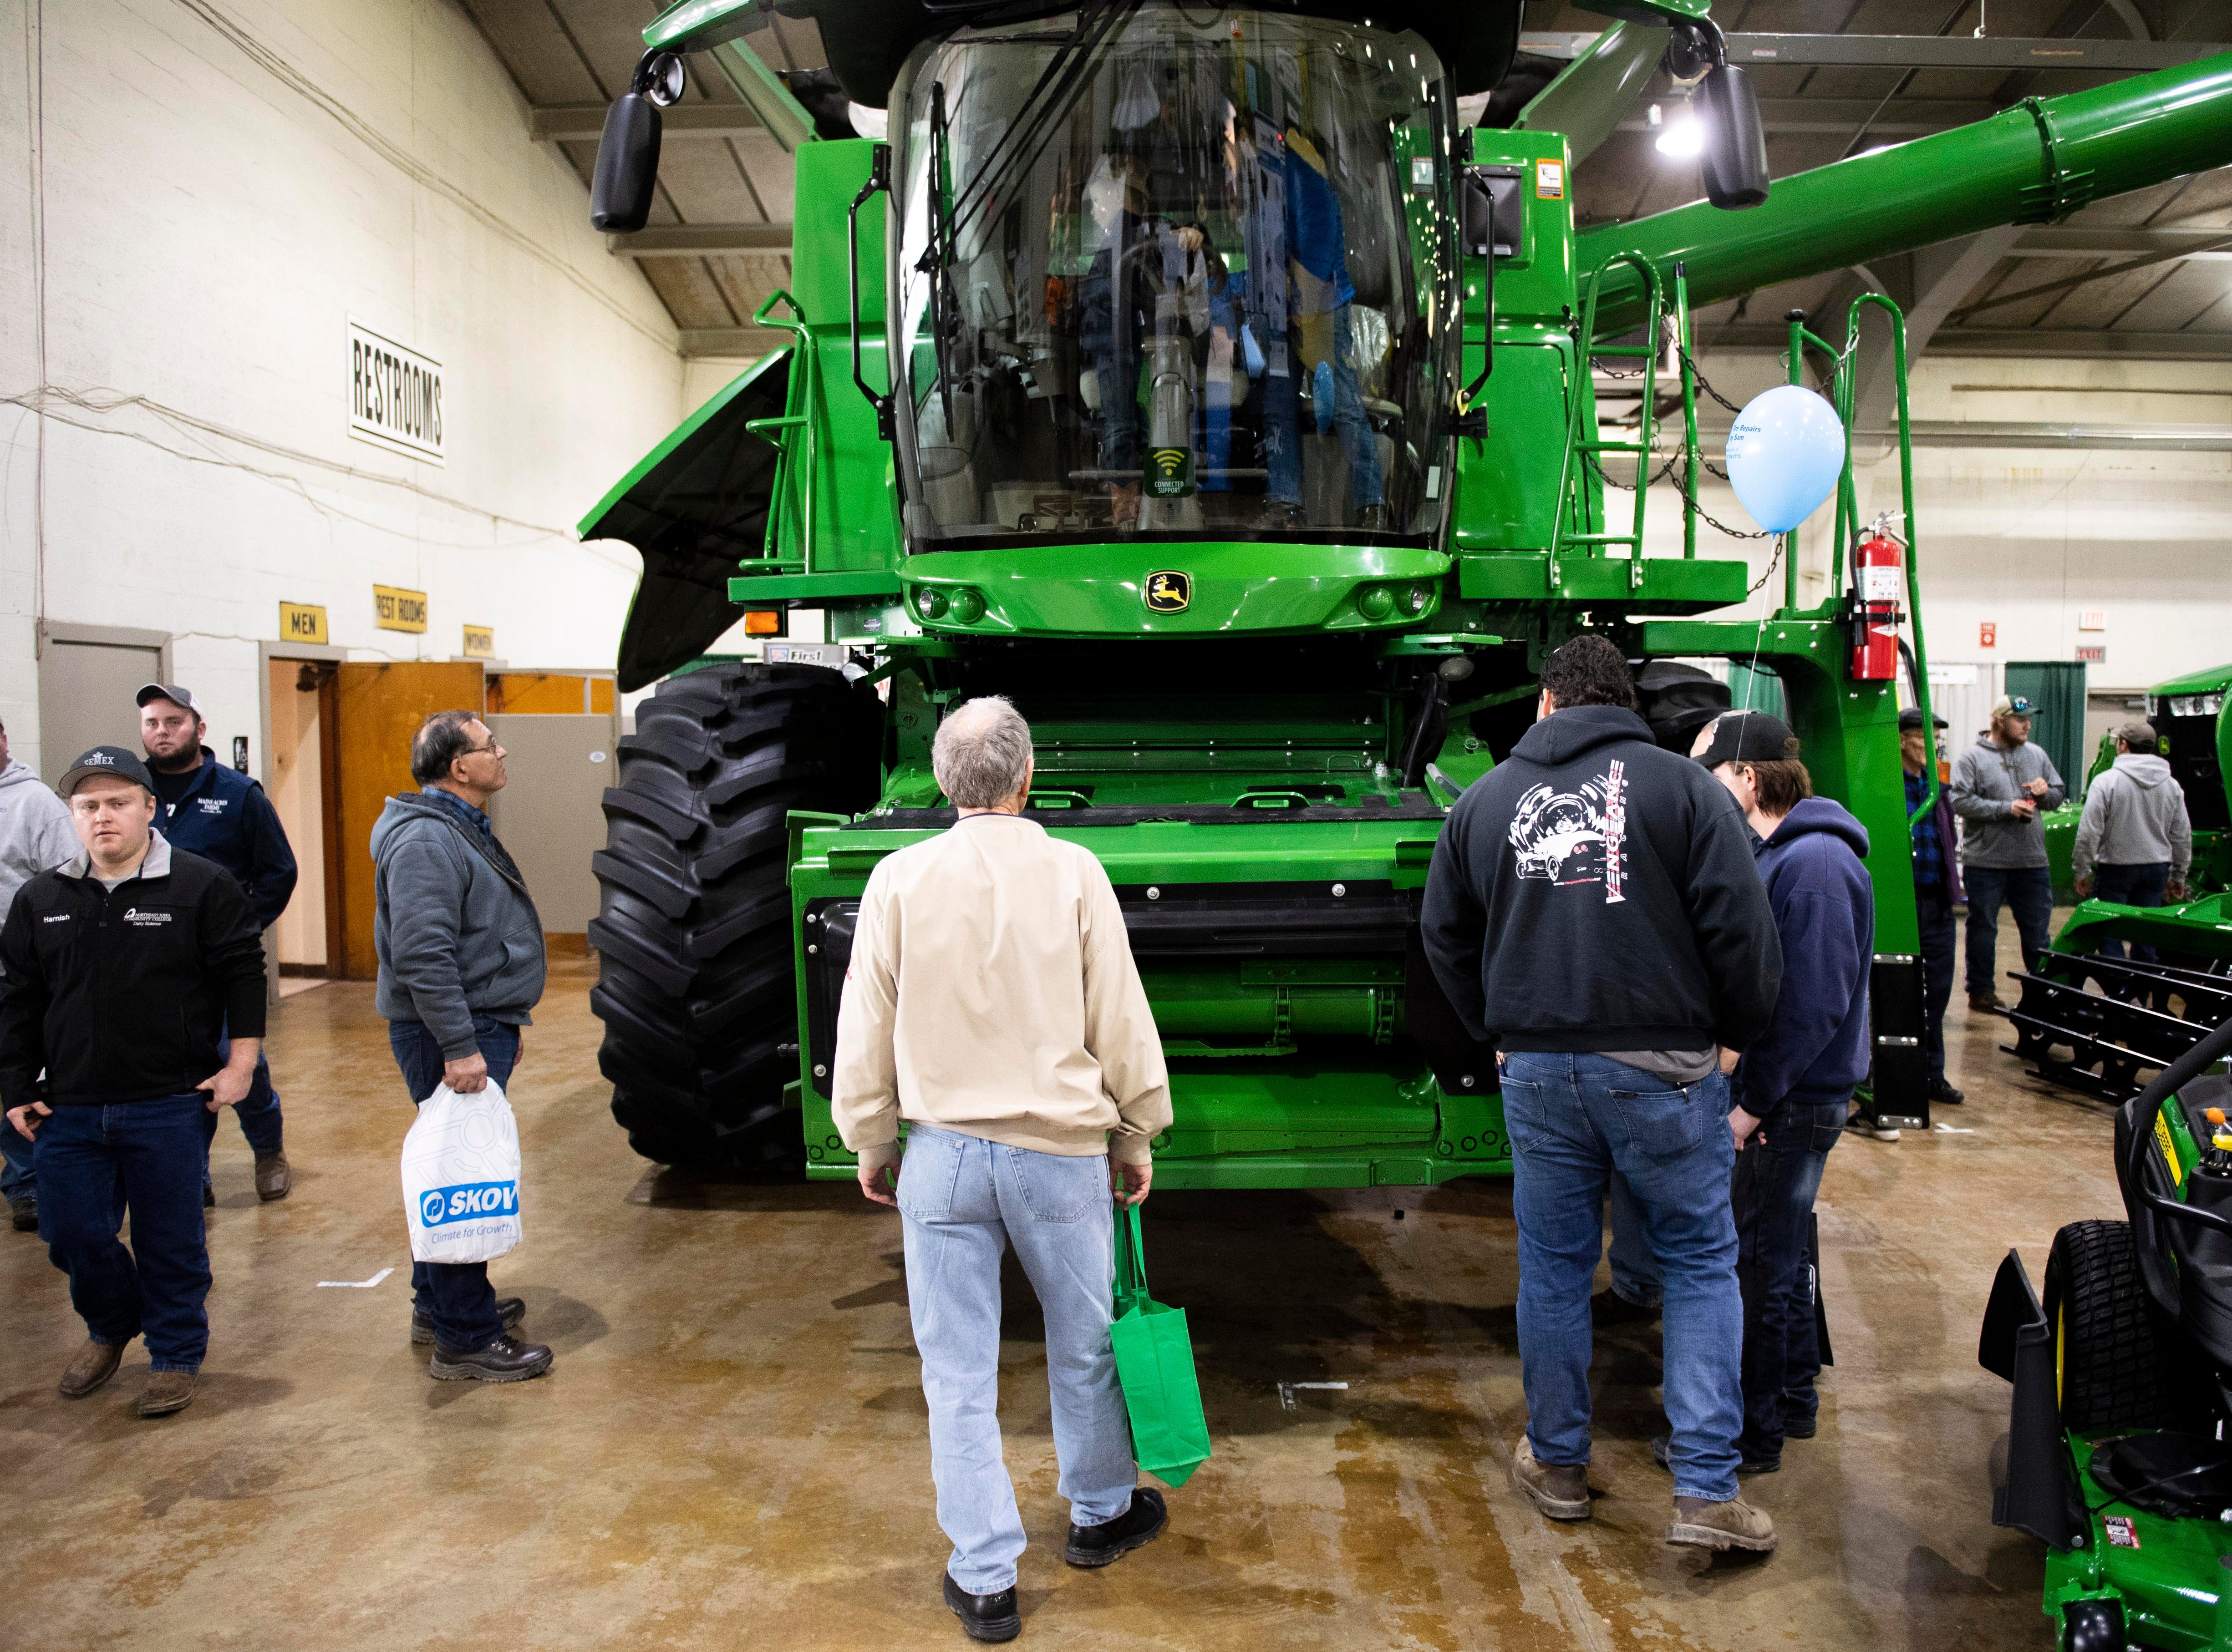 Keystone Farm Show attendees glaze around at the John Deere section of the farm show, Tuesday, Jan. 8, 2019. The Keystone Farm Show has nearly 420 vendors and is expected to bring up to 15,000 people to the York Expo Center. The show runs through Thursday, Jan. 10.